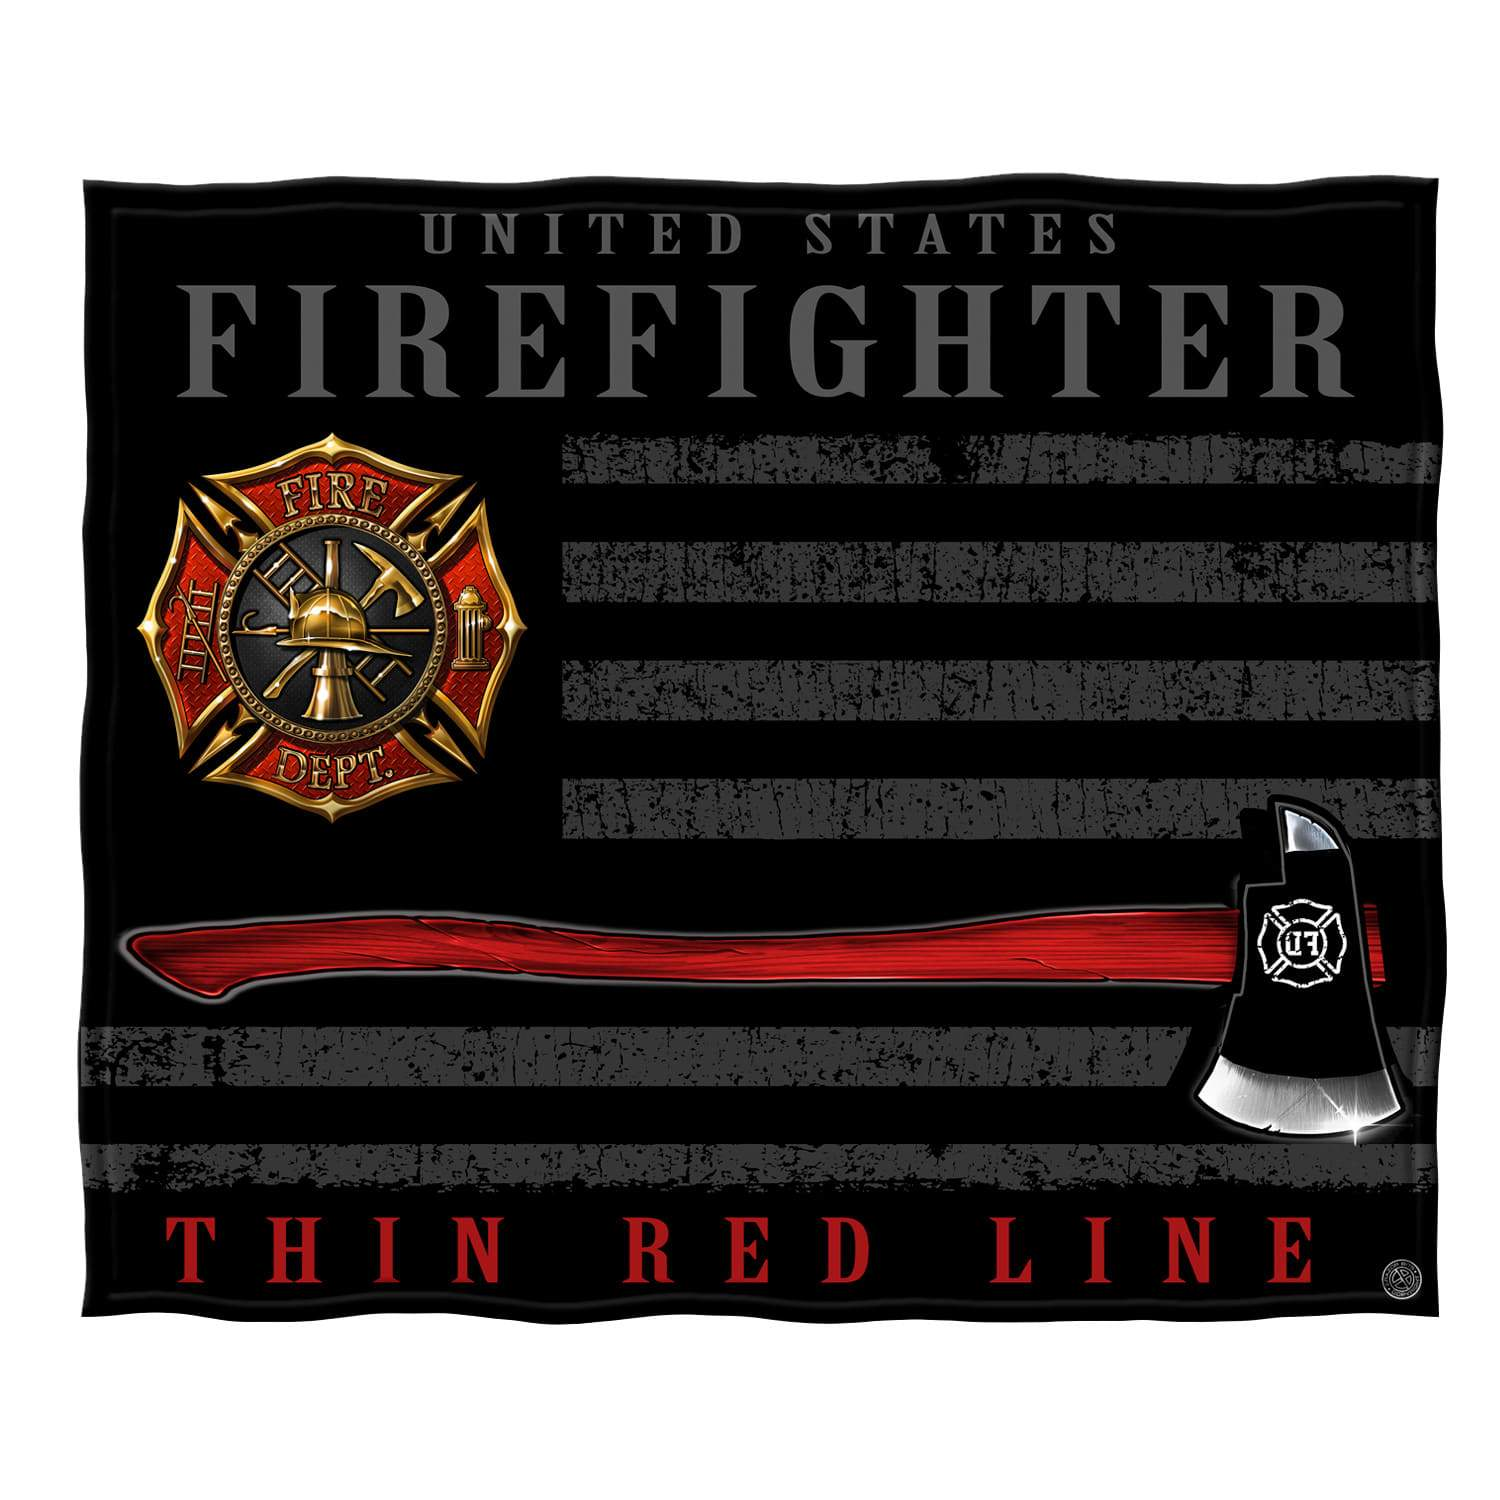 Firefighter Patriotic Flag Axe Premium Plush Blanket FF2443-TB